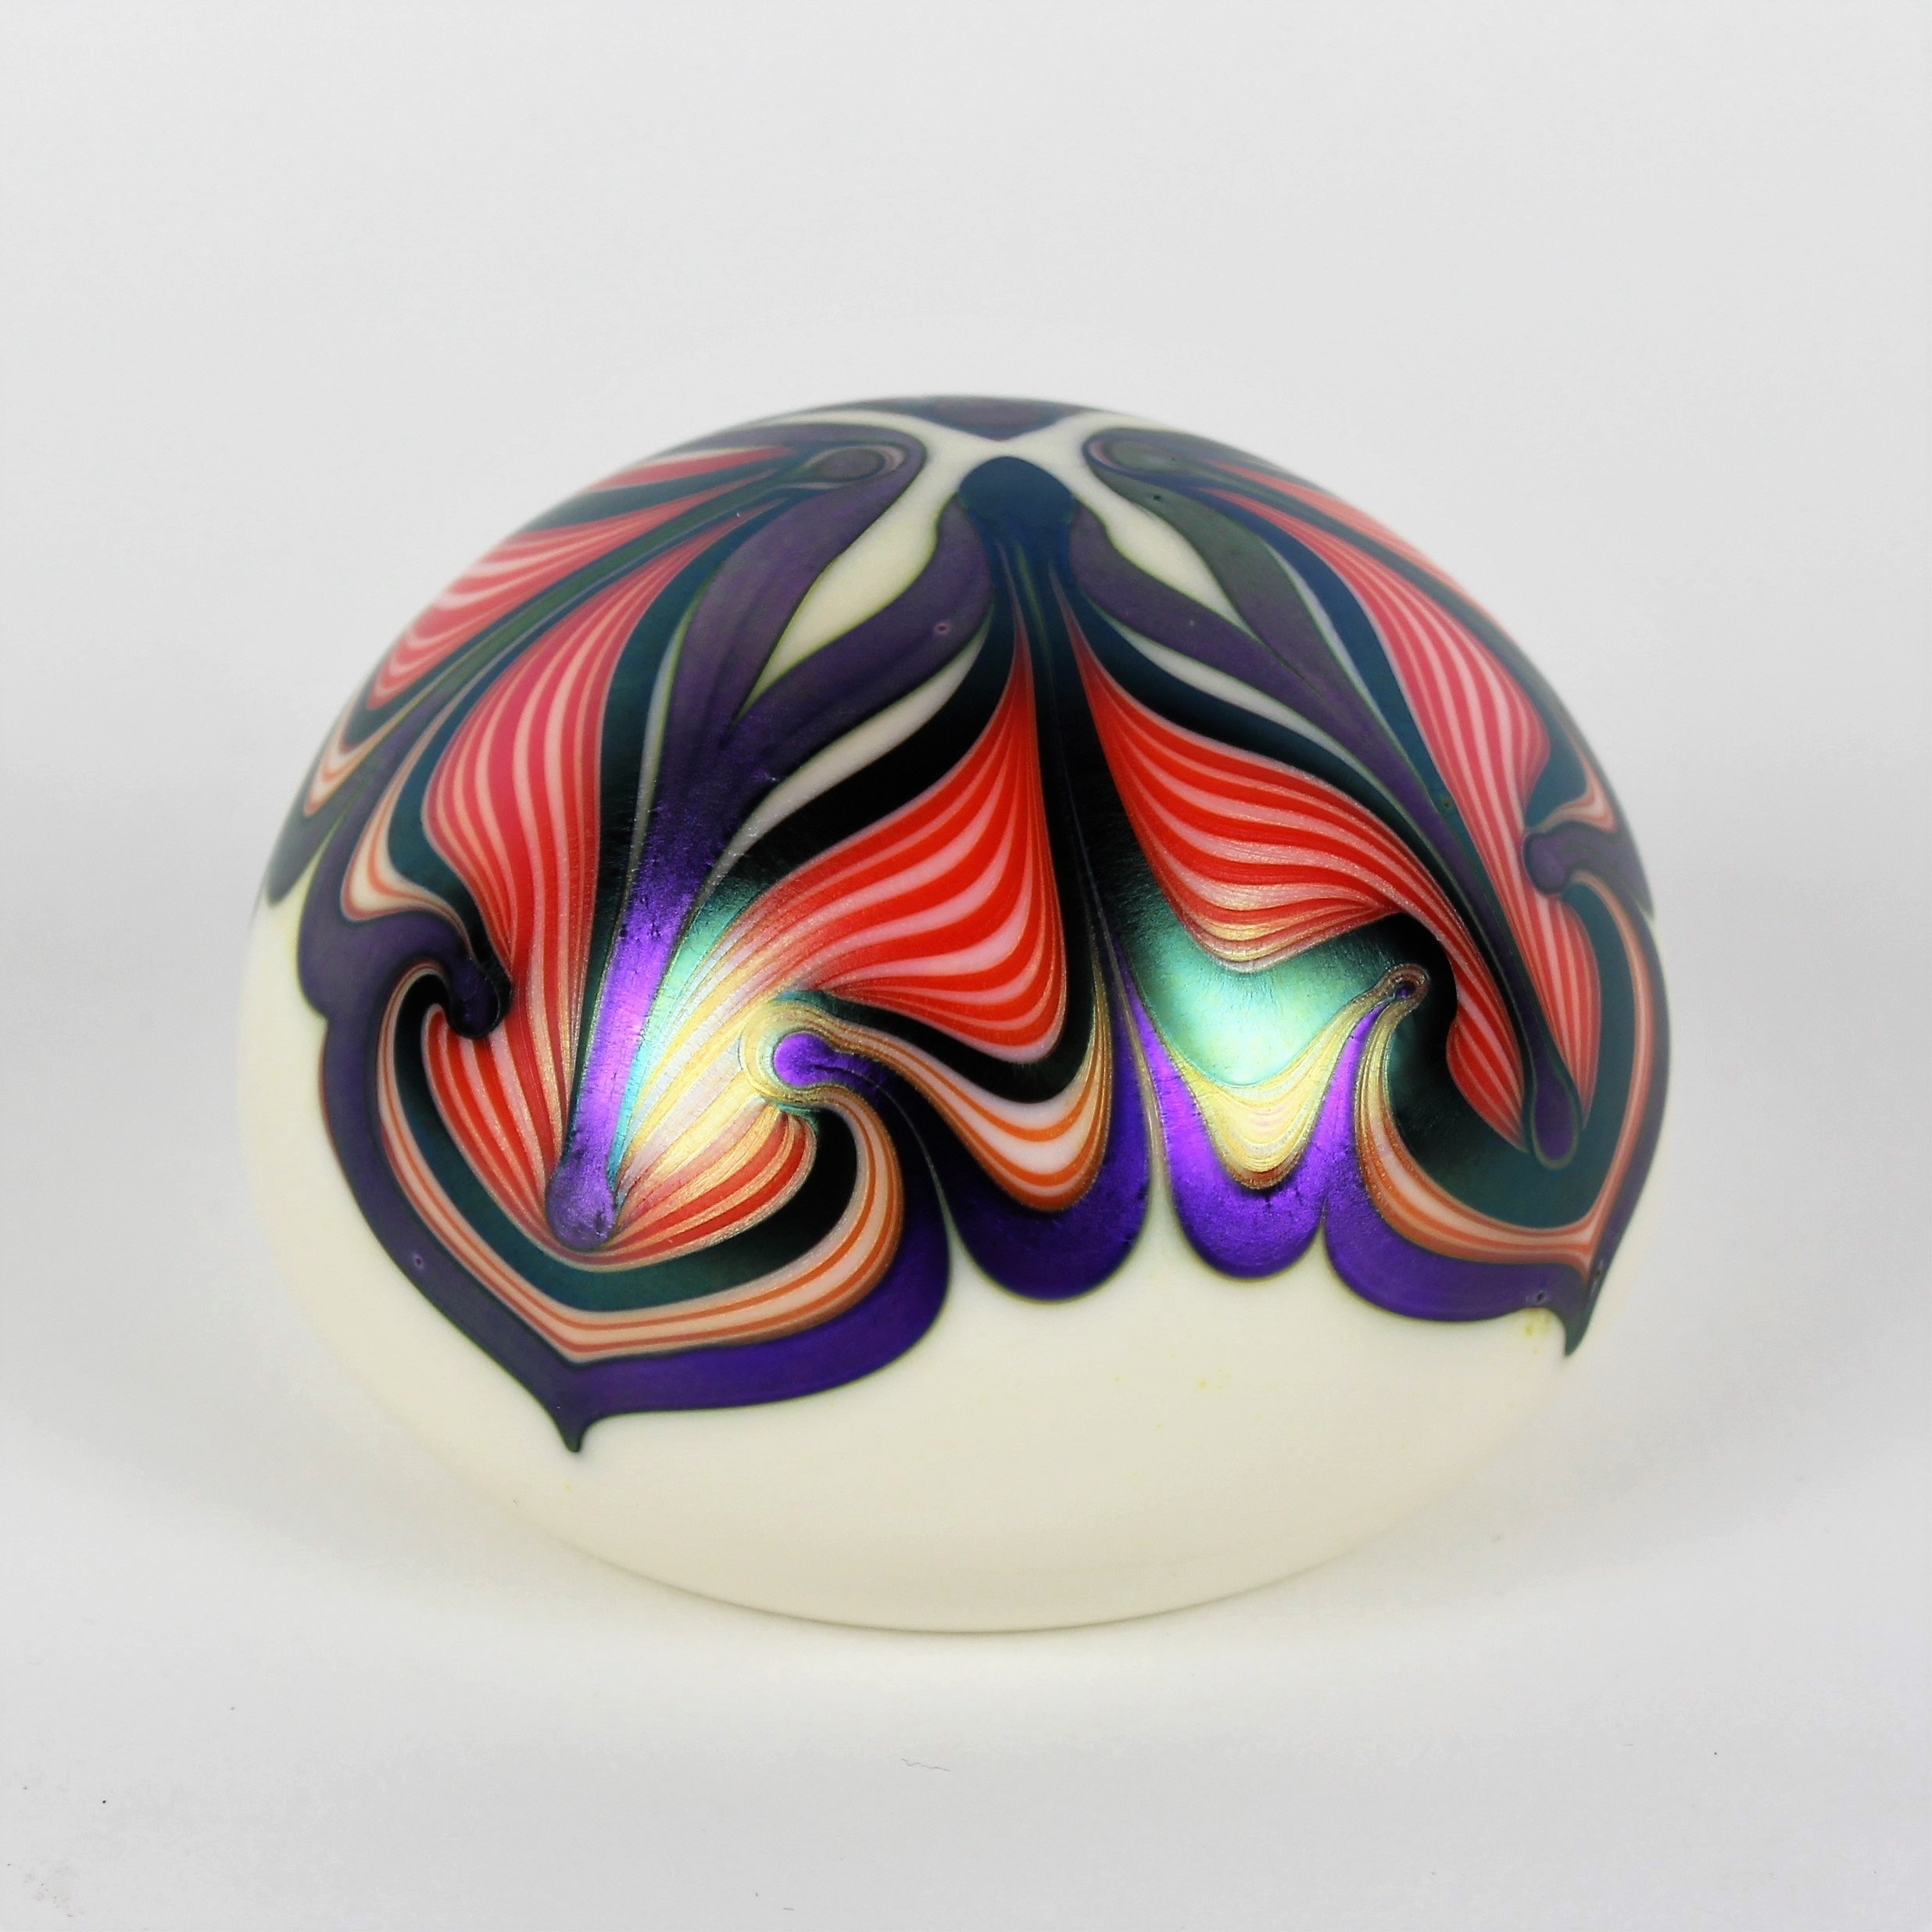 Orient & Flume Patterned Art Glass Paperweight